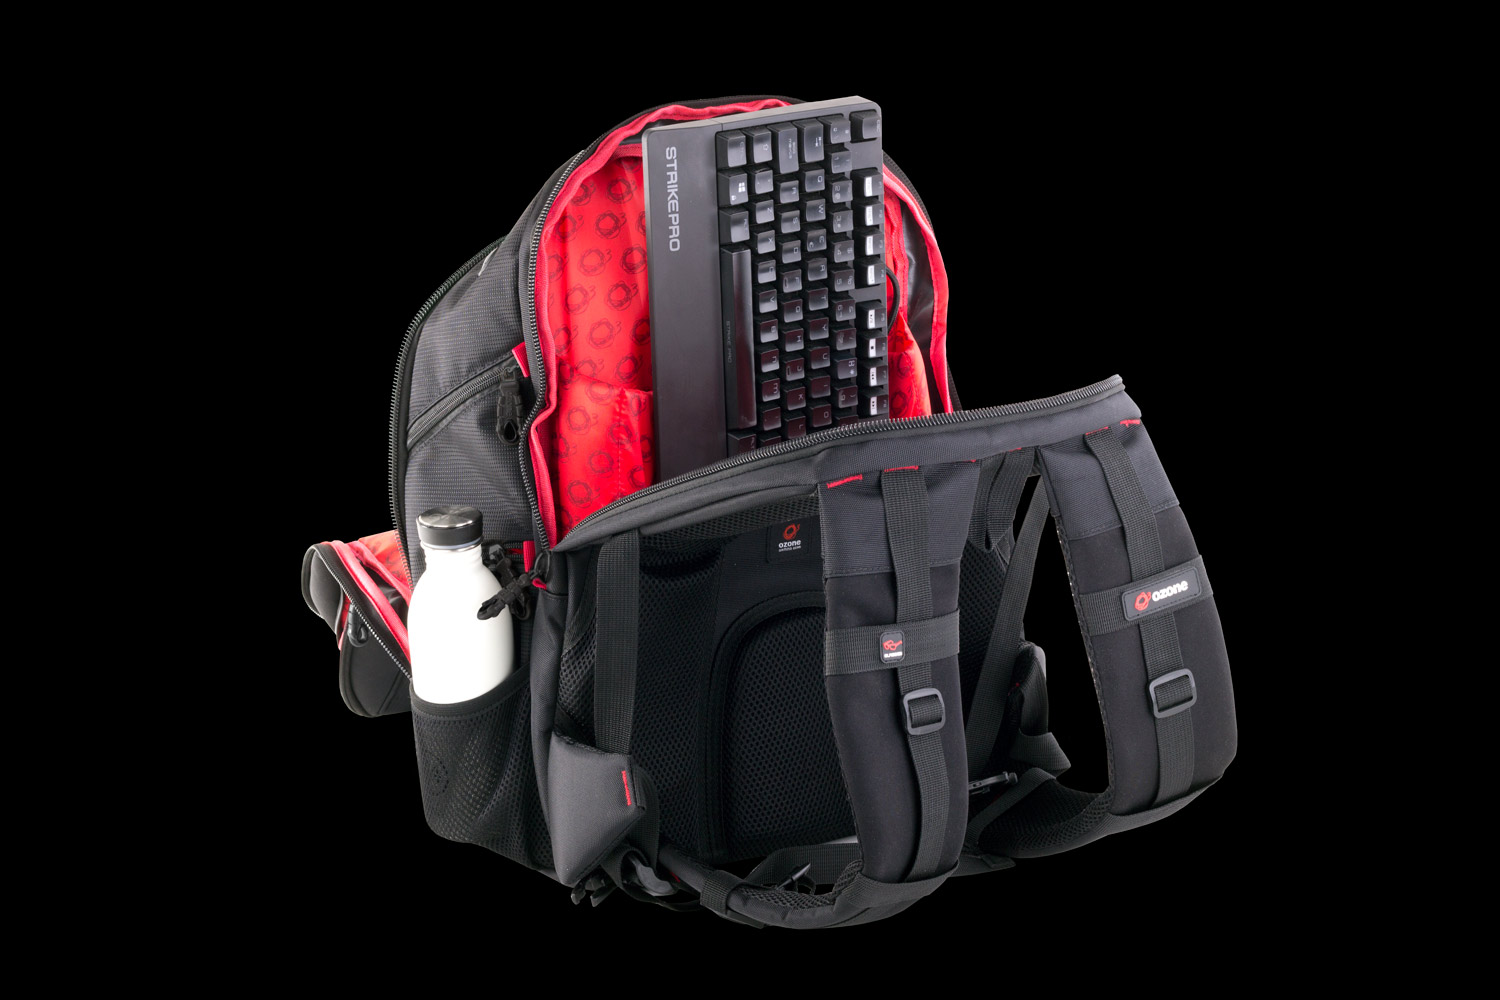 survivor - Pro Gaming Backpack - Accesories - 4